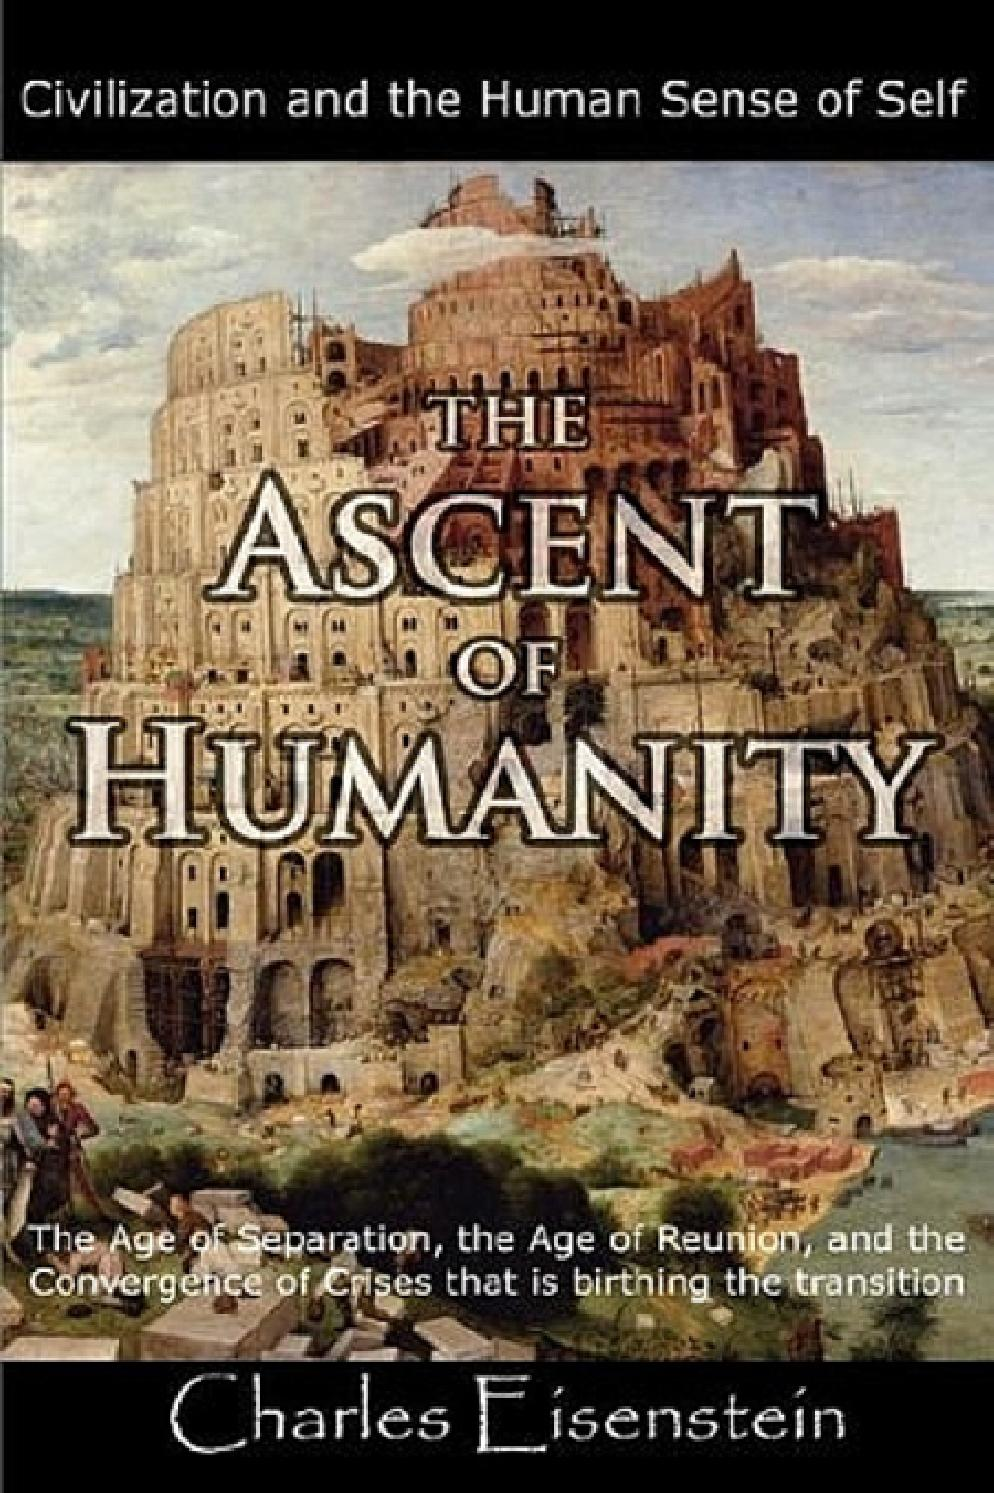 Charles Eisenstein - The Ascent of Humanity PDF book part